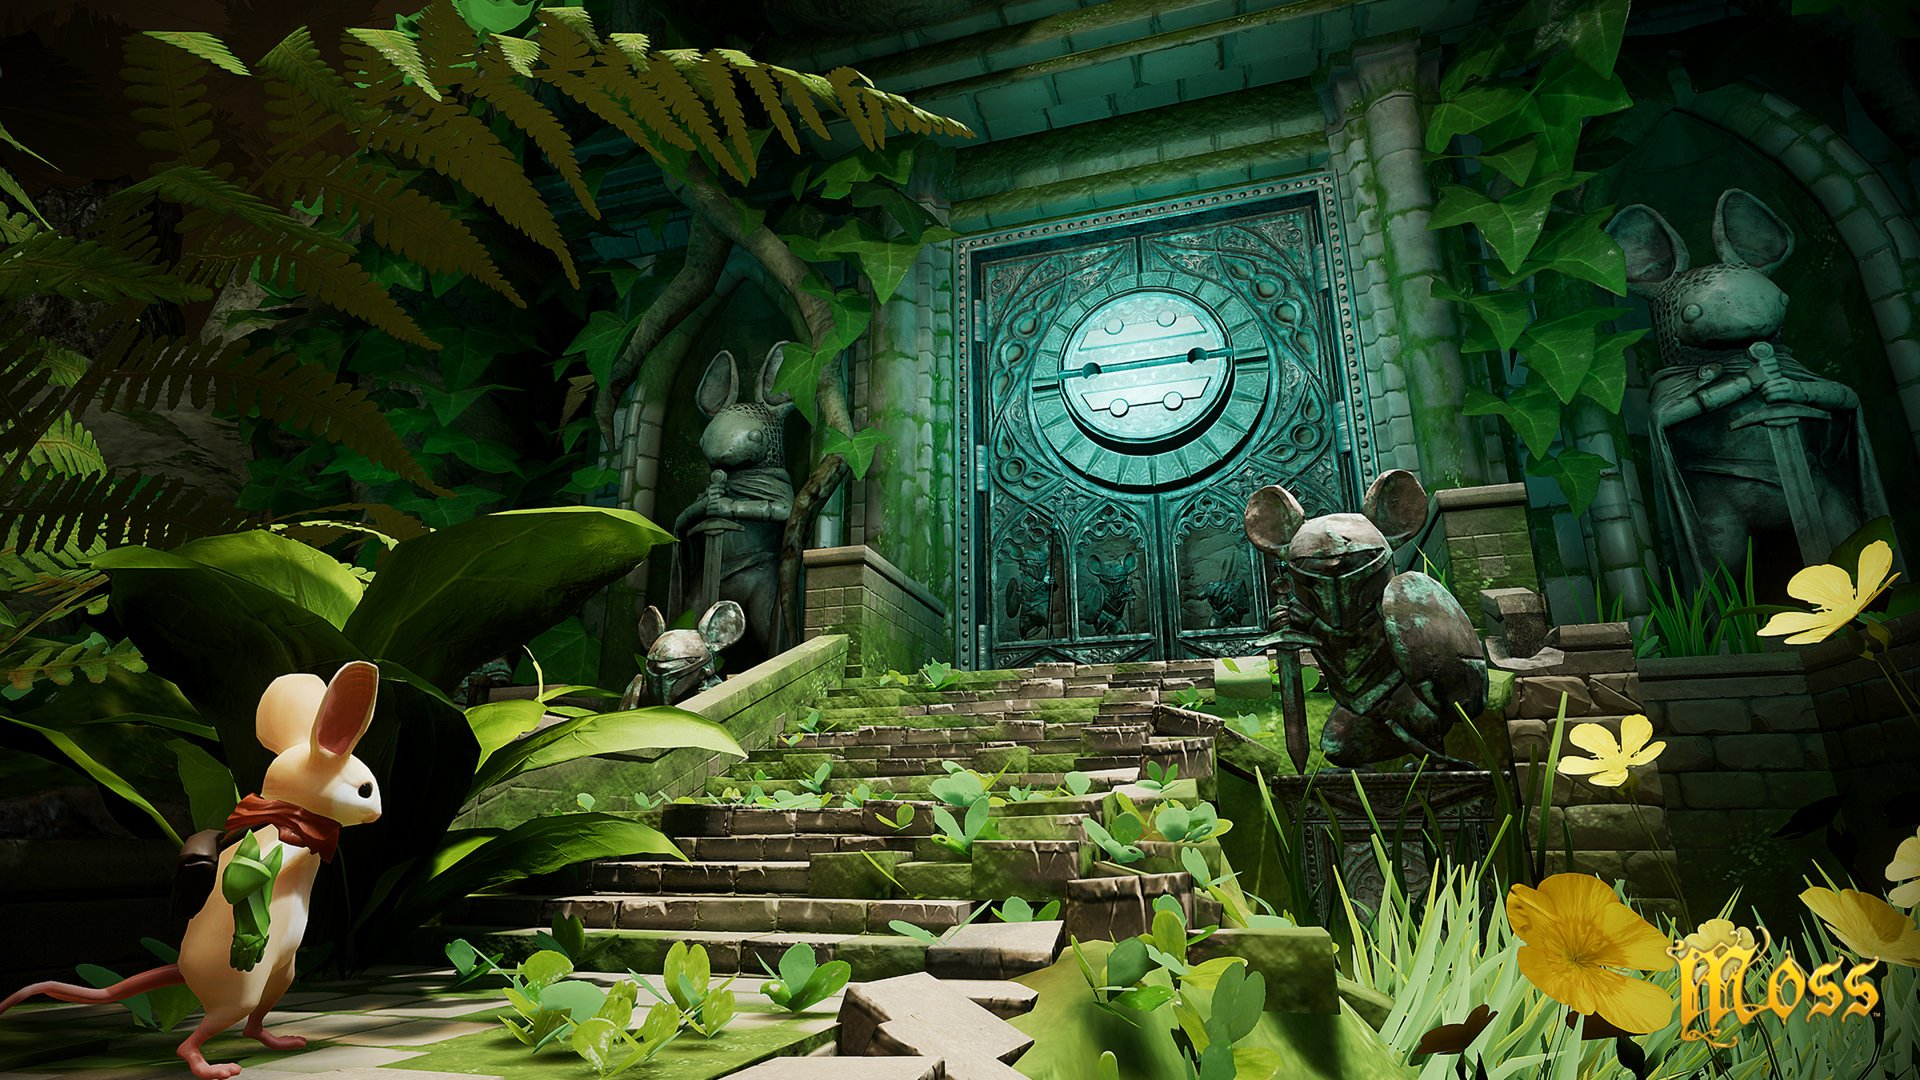 moss video game screenshot